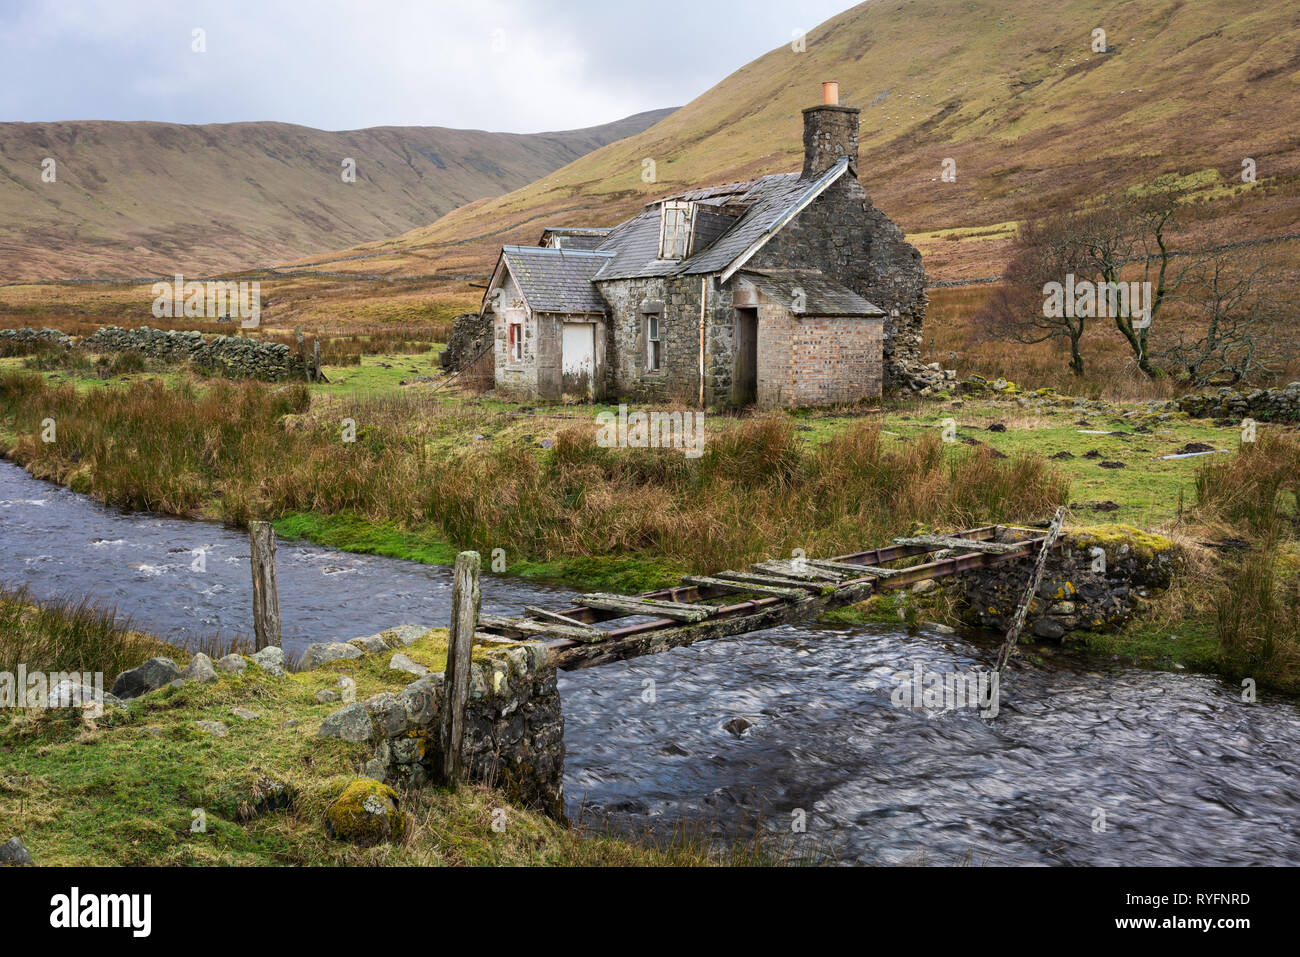 A traditional shepherds cottage falling into disrepair. The location is in the heart of the Southern Uplands and is very isolated with no access road. - Stock Image